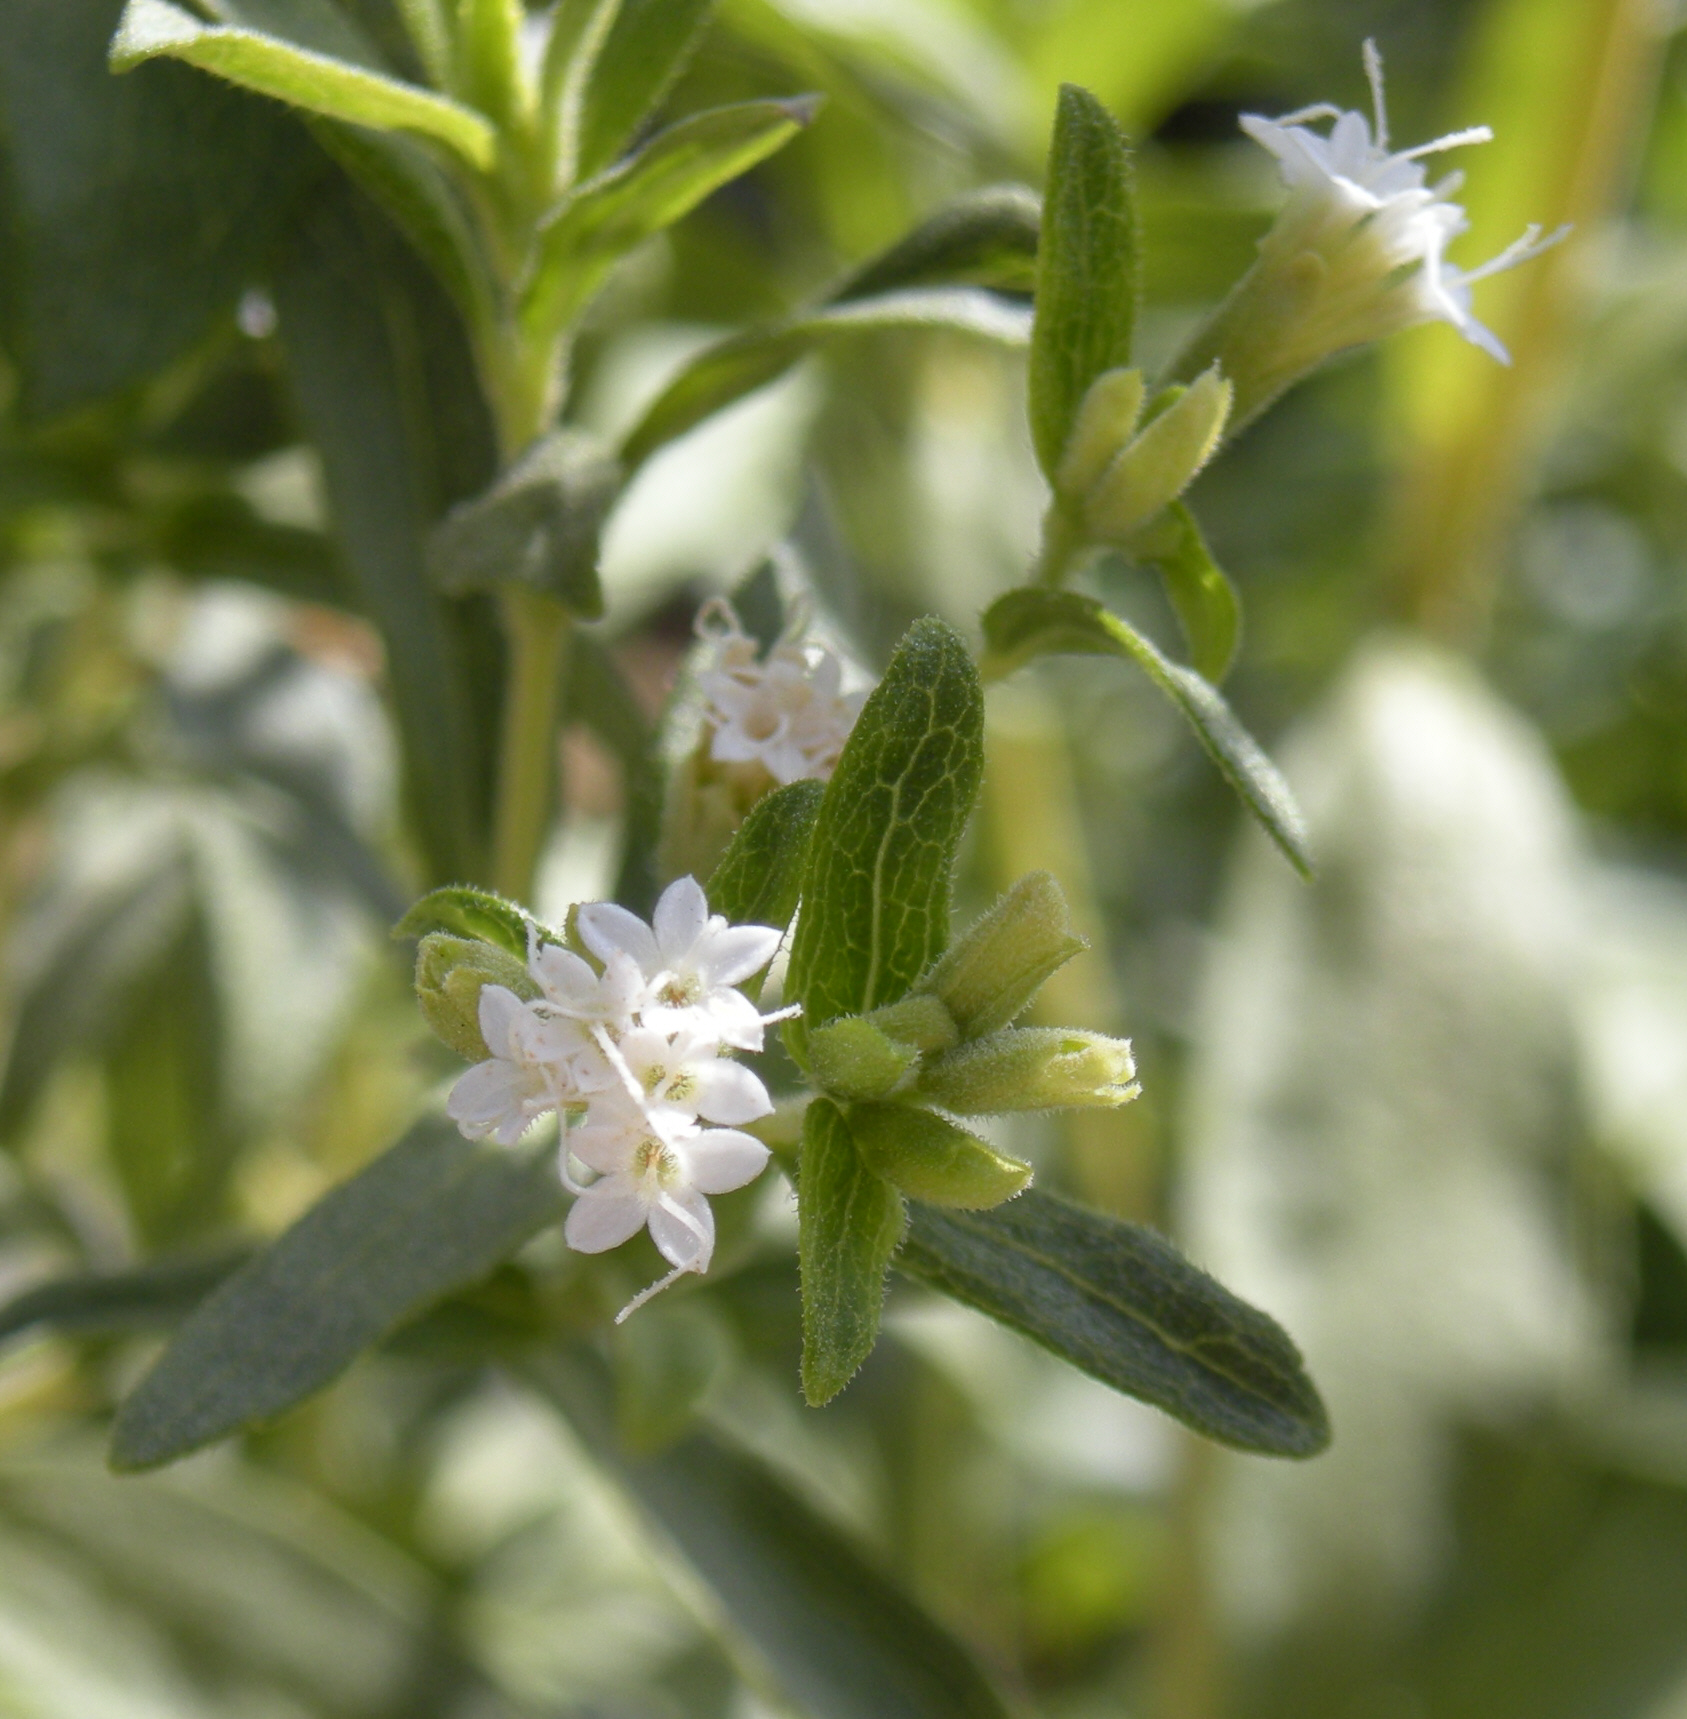 http://commons.wikipedia.org/wiki/File:Stevia_rebaudiana_flowers.jpg